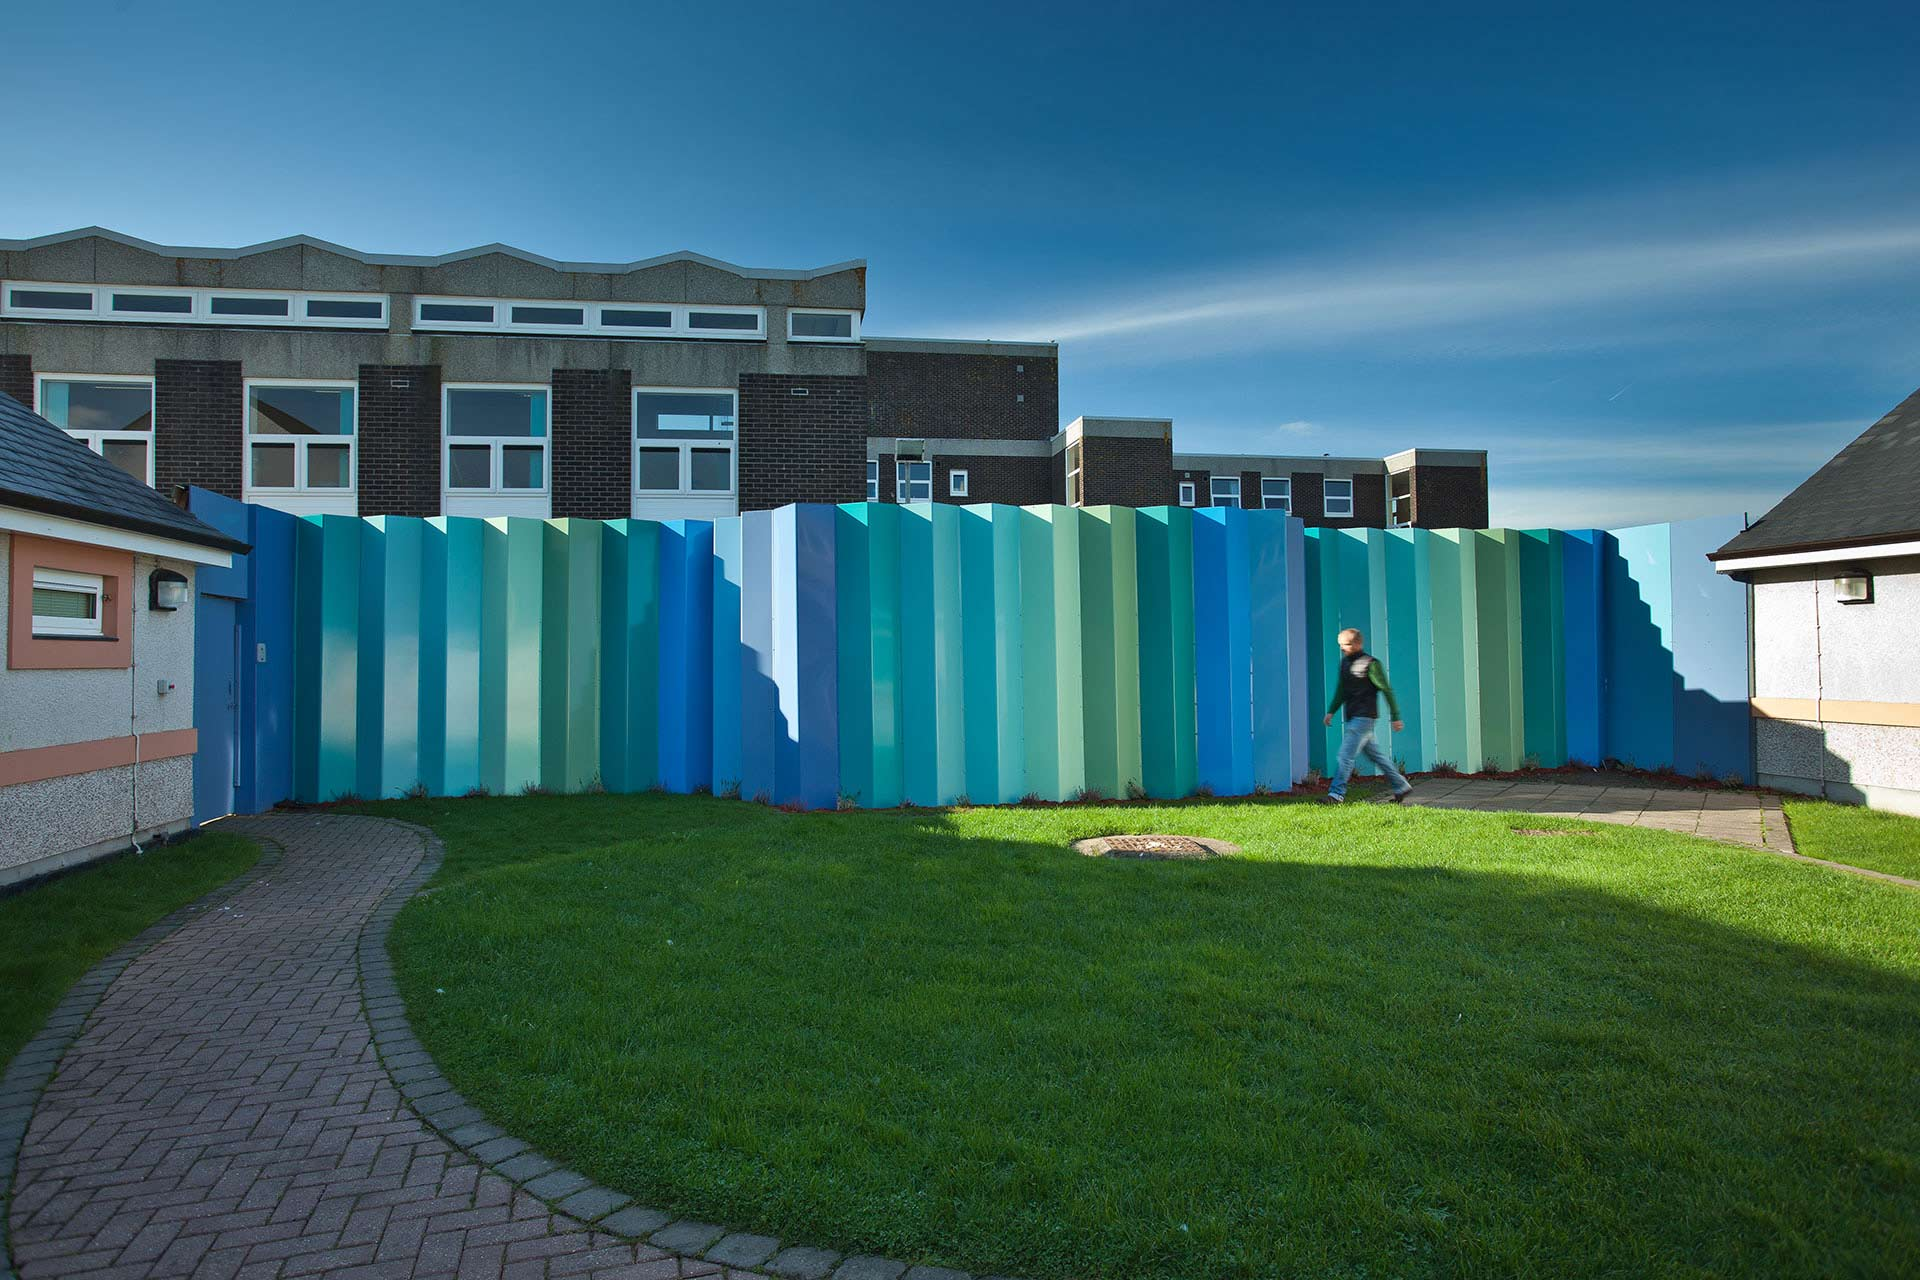 NHS mental health fence provides an acoustic baffle